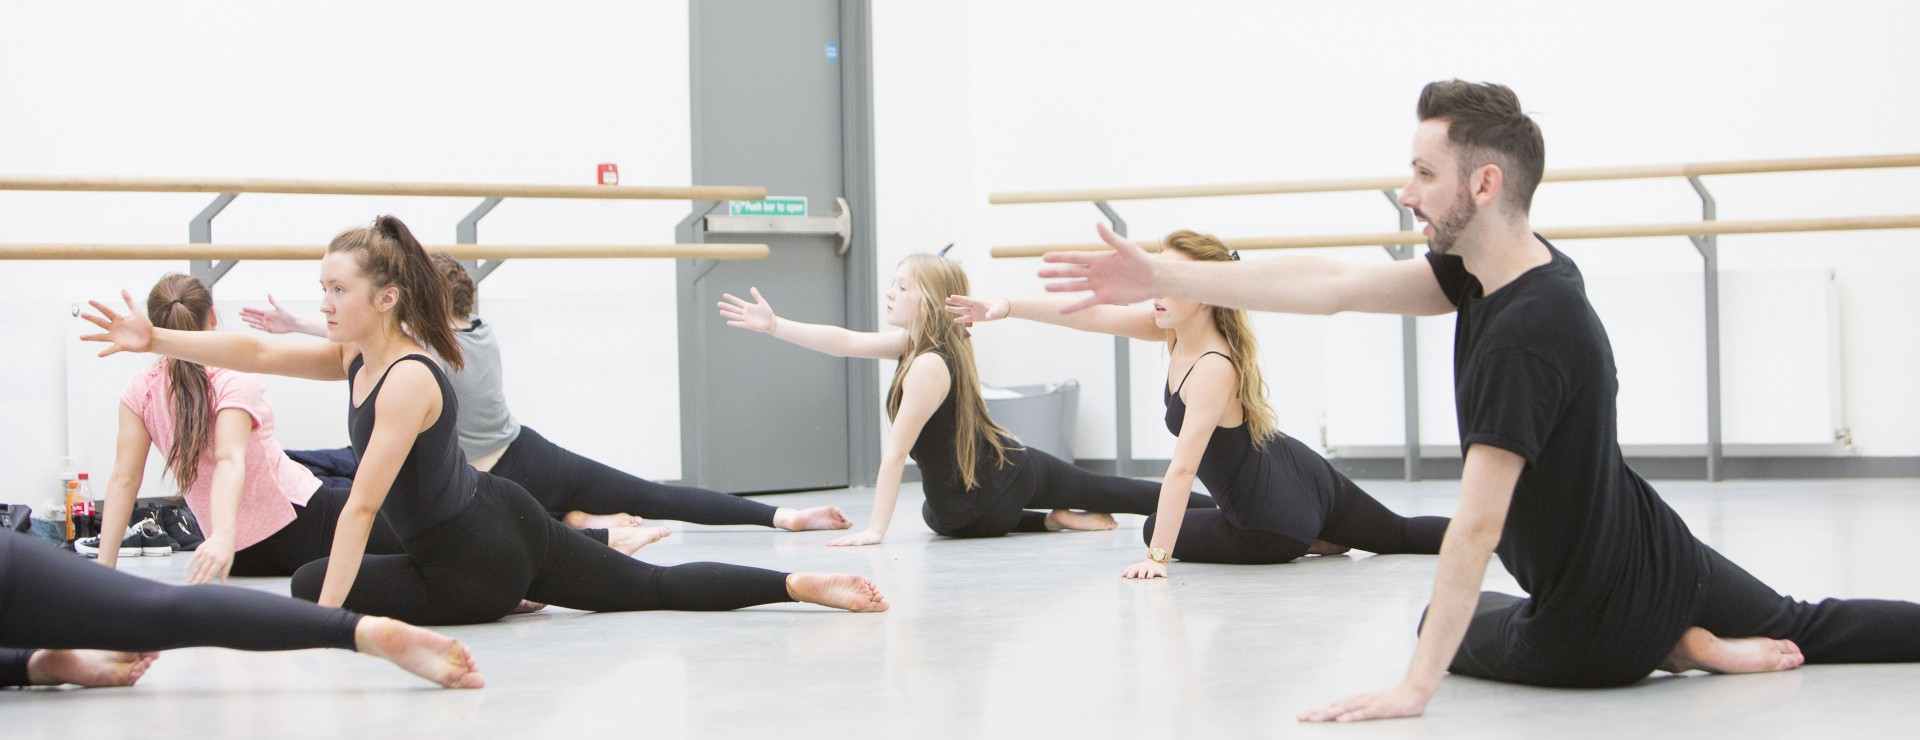 Contemporary Dance (ages 13 - 17) Summer Schools Image